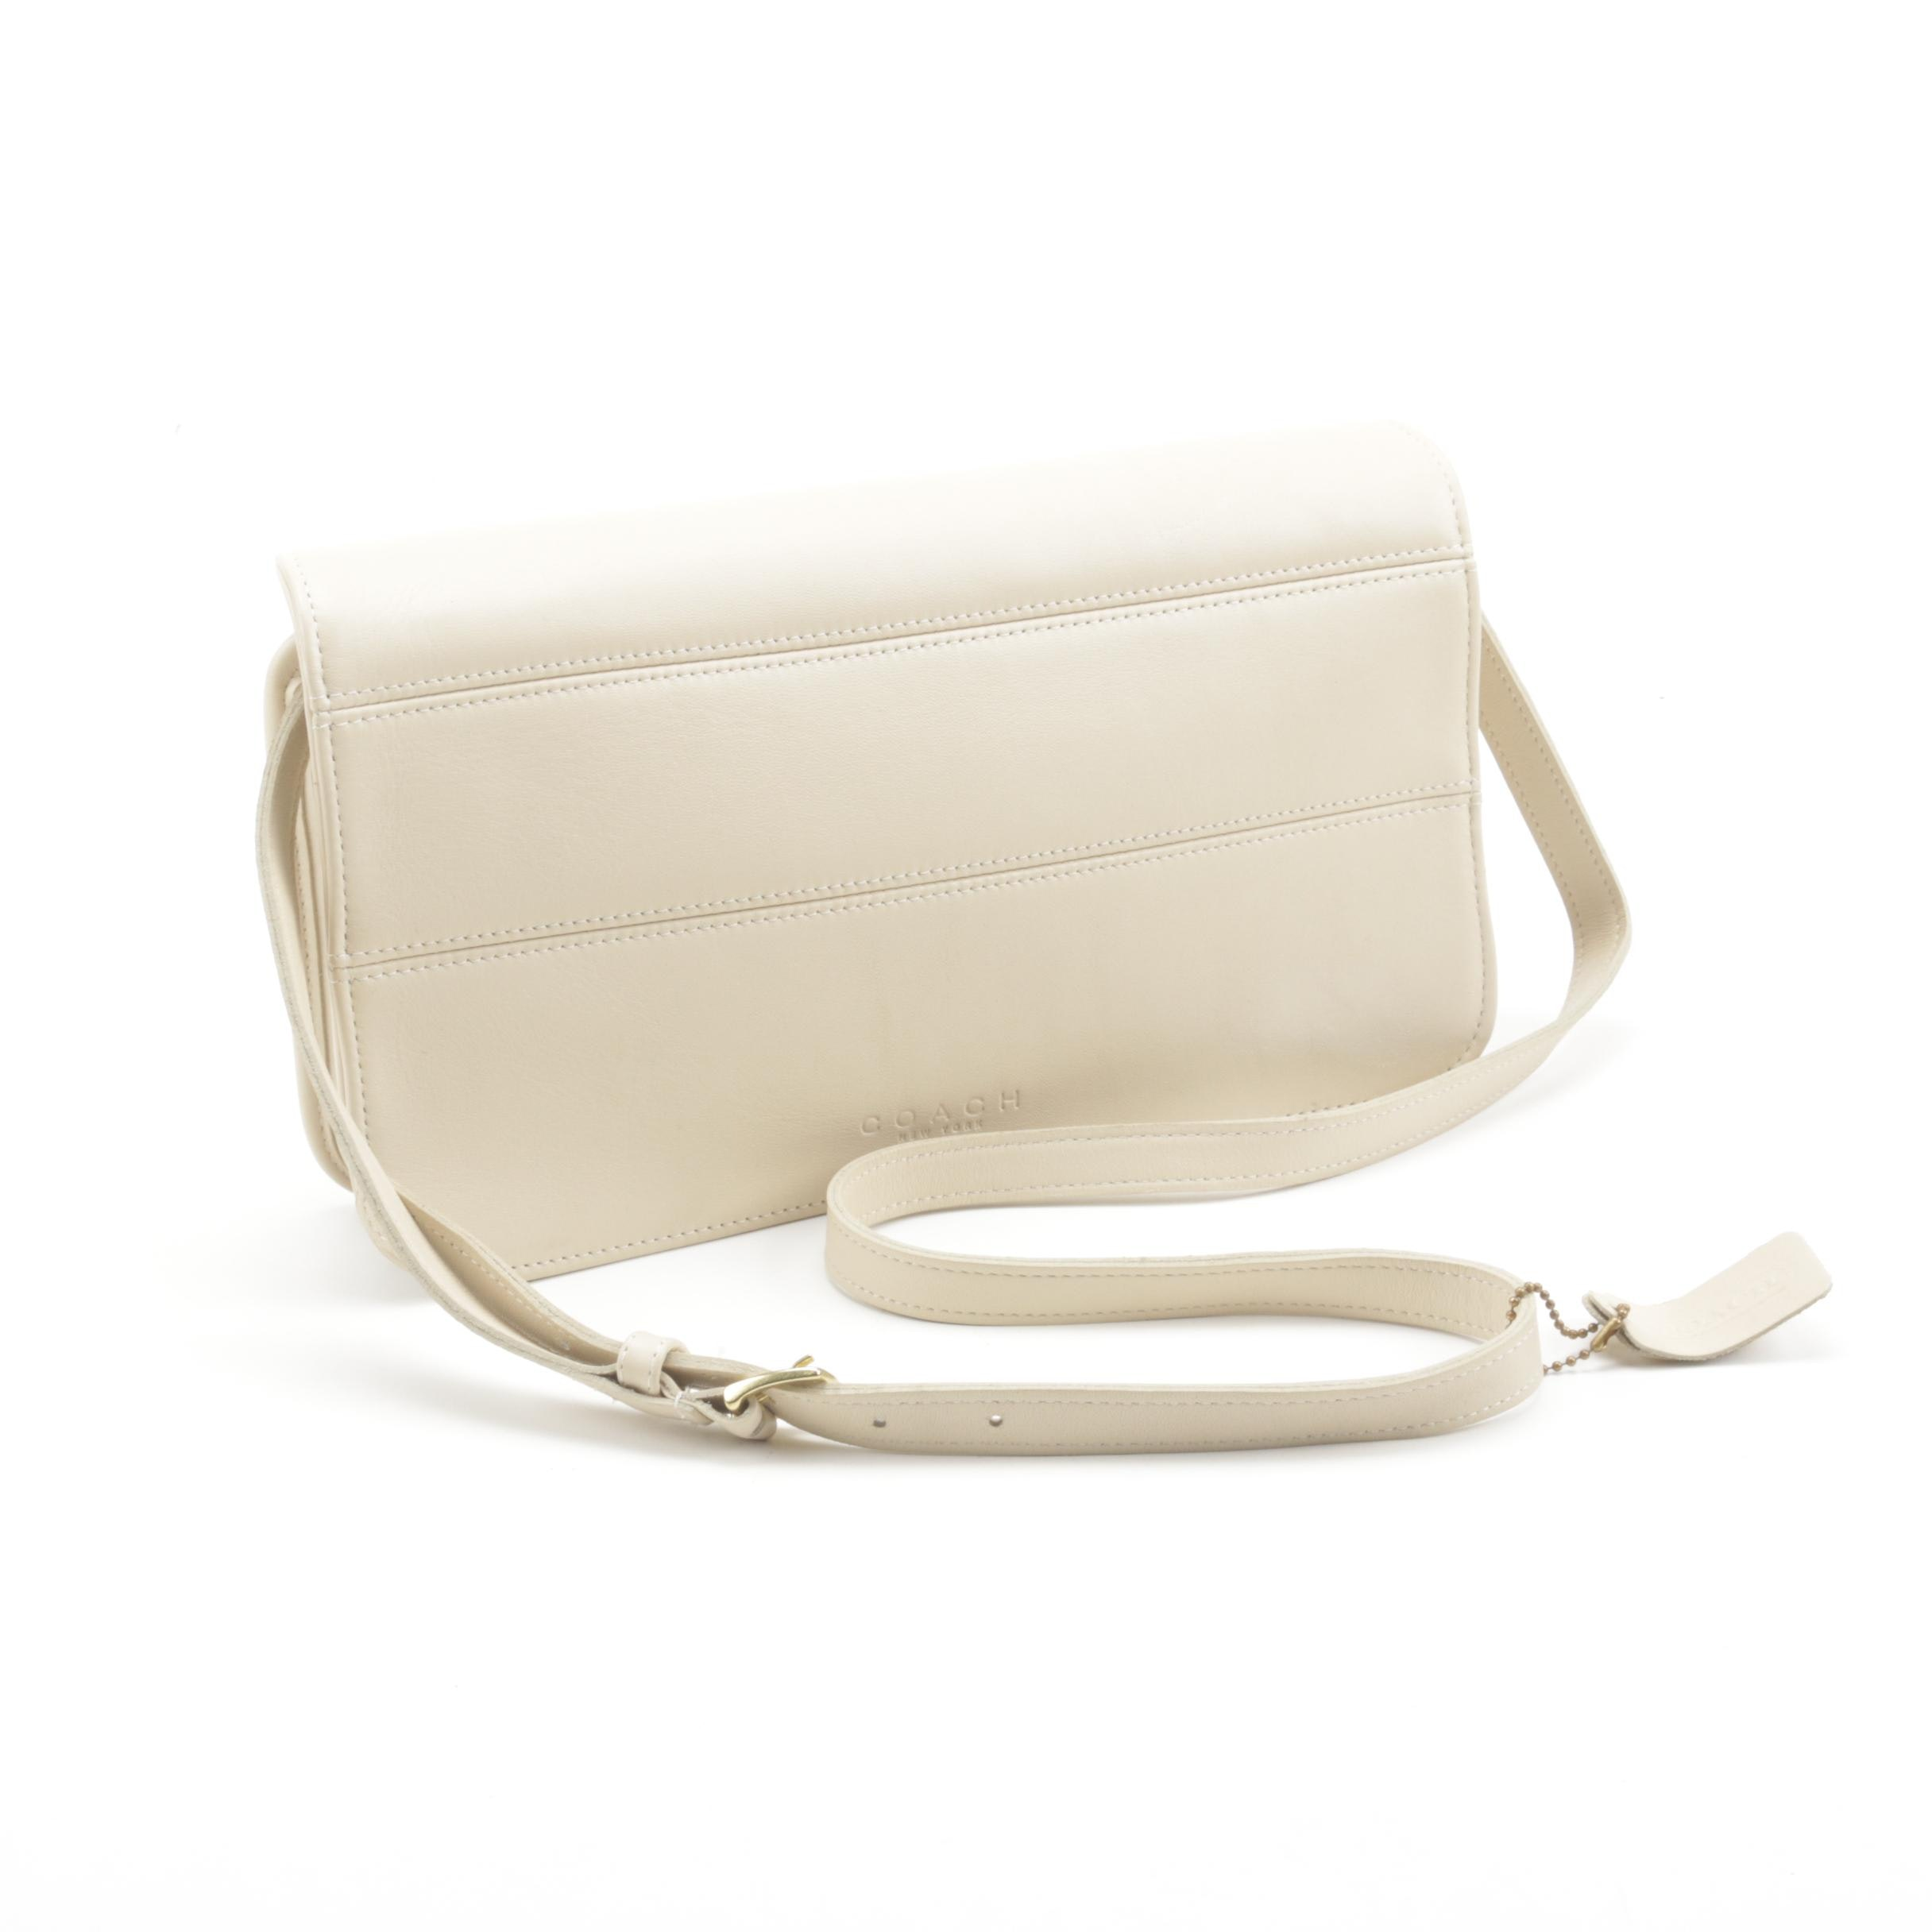 Coach Off-White Leather Convertible Clutch and Crossbody Bag, Vintage